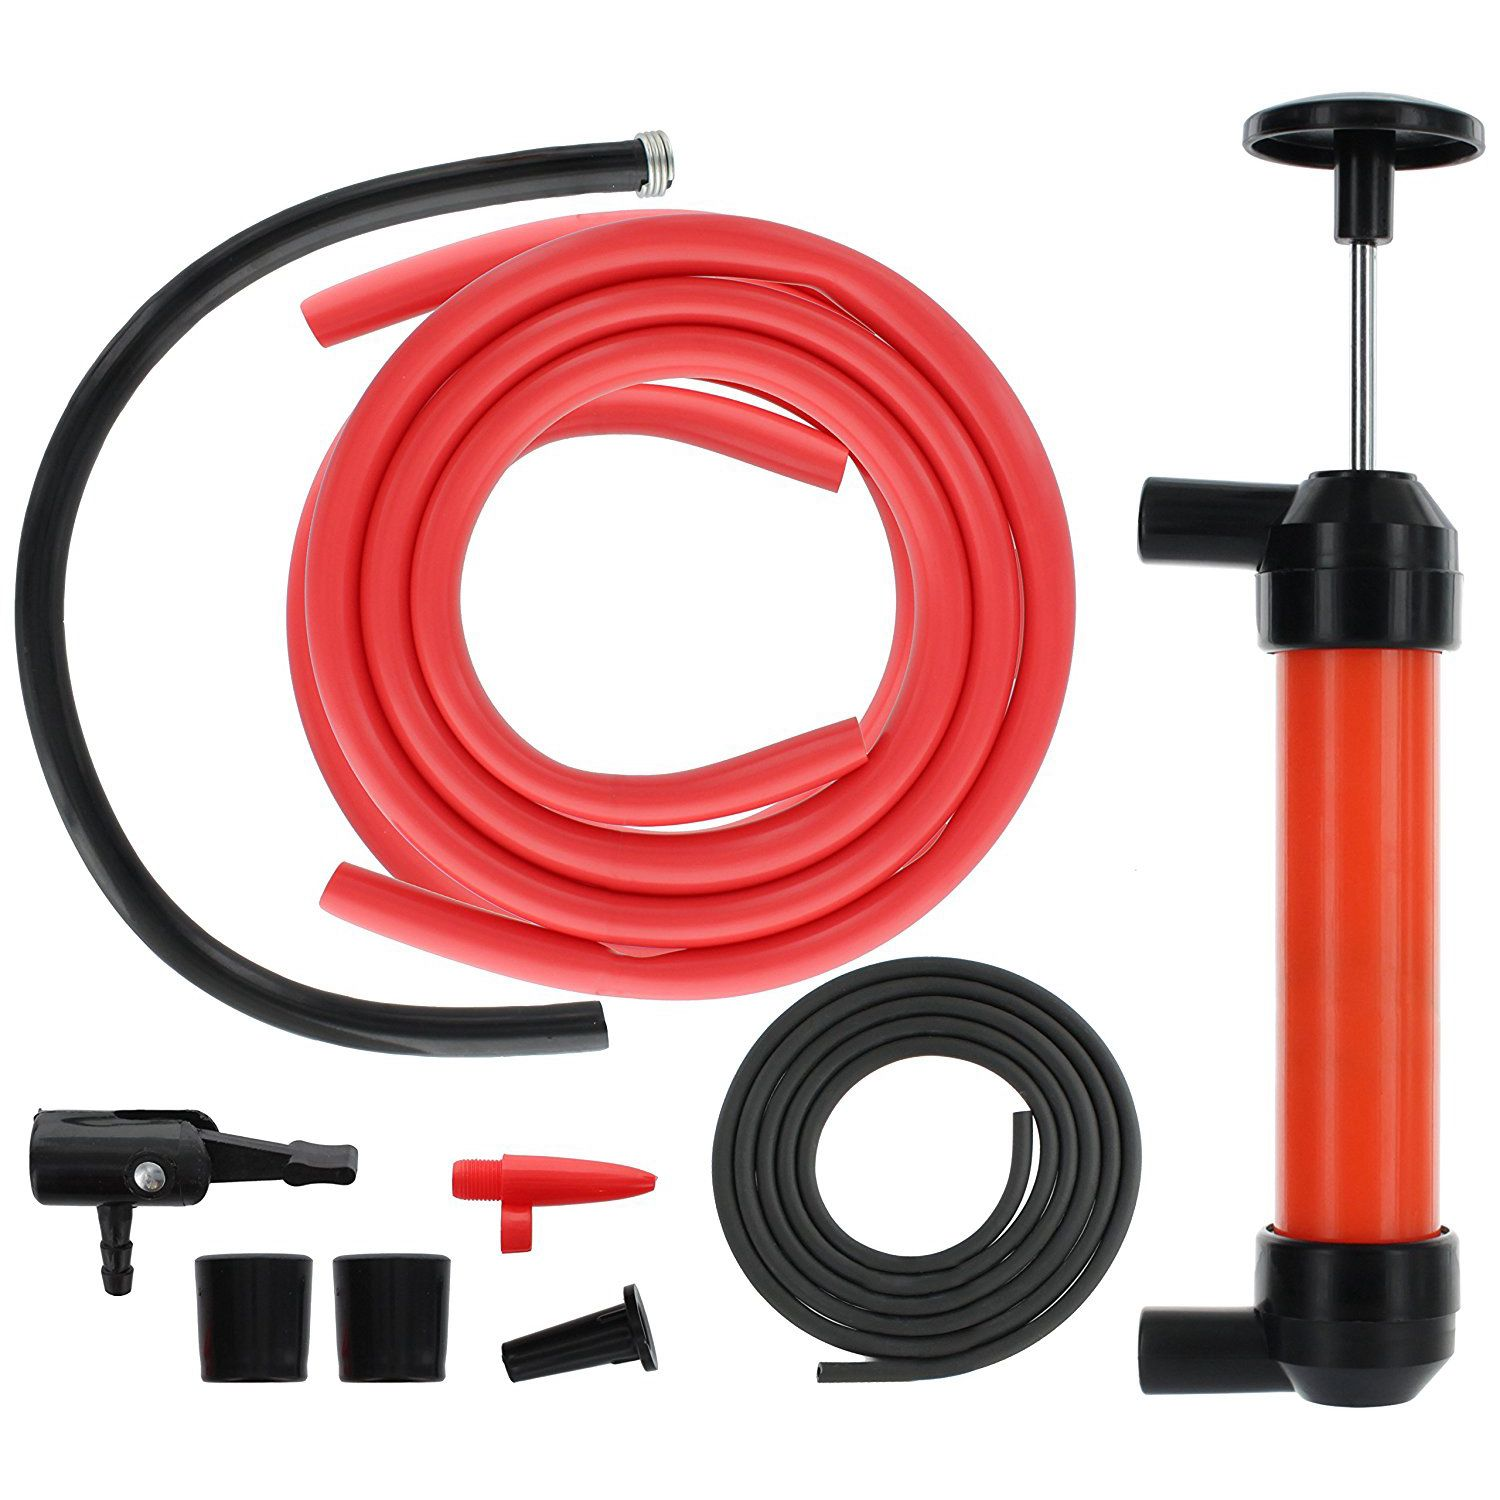 Multi-Purpose Siphon Transfer Pump Kit with Dipstick Tube | Fluid Fuel Extractor Suction Tool for Oil/Gasoline/ Water etcMulti-Purpose Siphon Transfer Pump Kit with Dipstick Tube | Fluid Fuel Extractor Suction Tool for Oil/Gasoline/ Water etc